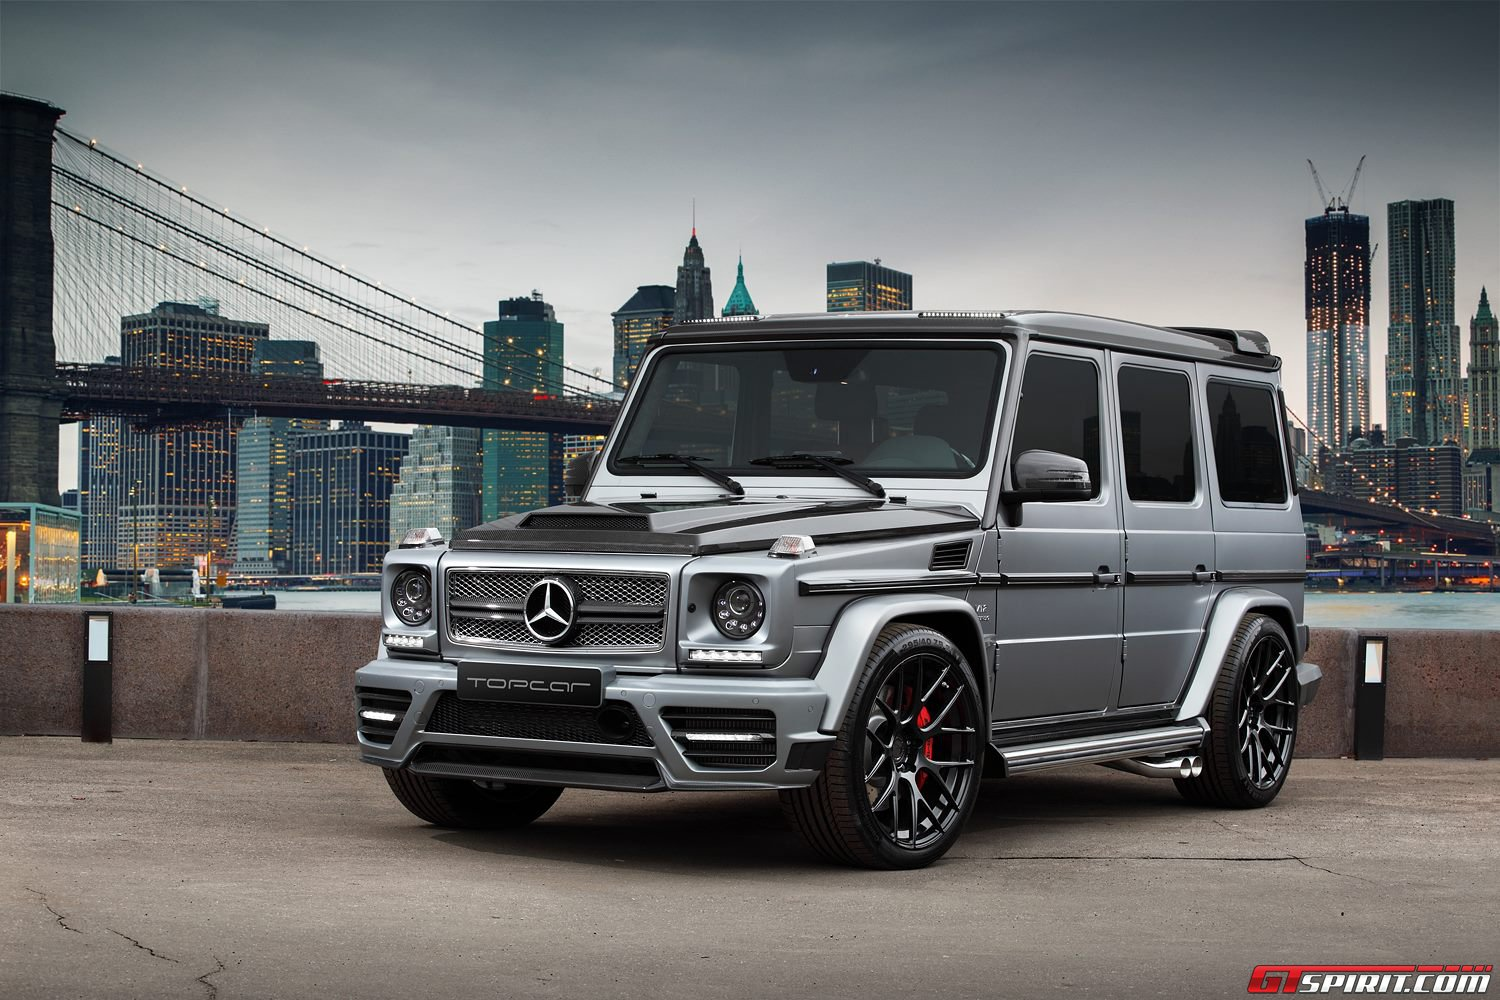 Mercedes-Benz G 65 AMG by Mansory - 9 photos - GTspirit